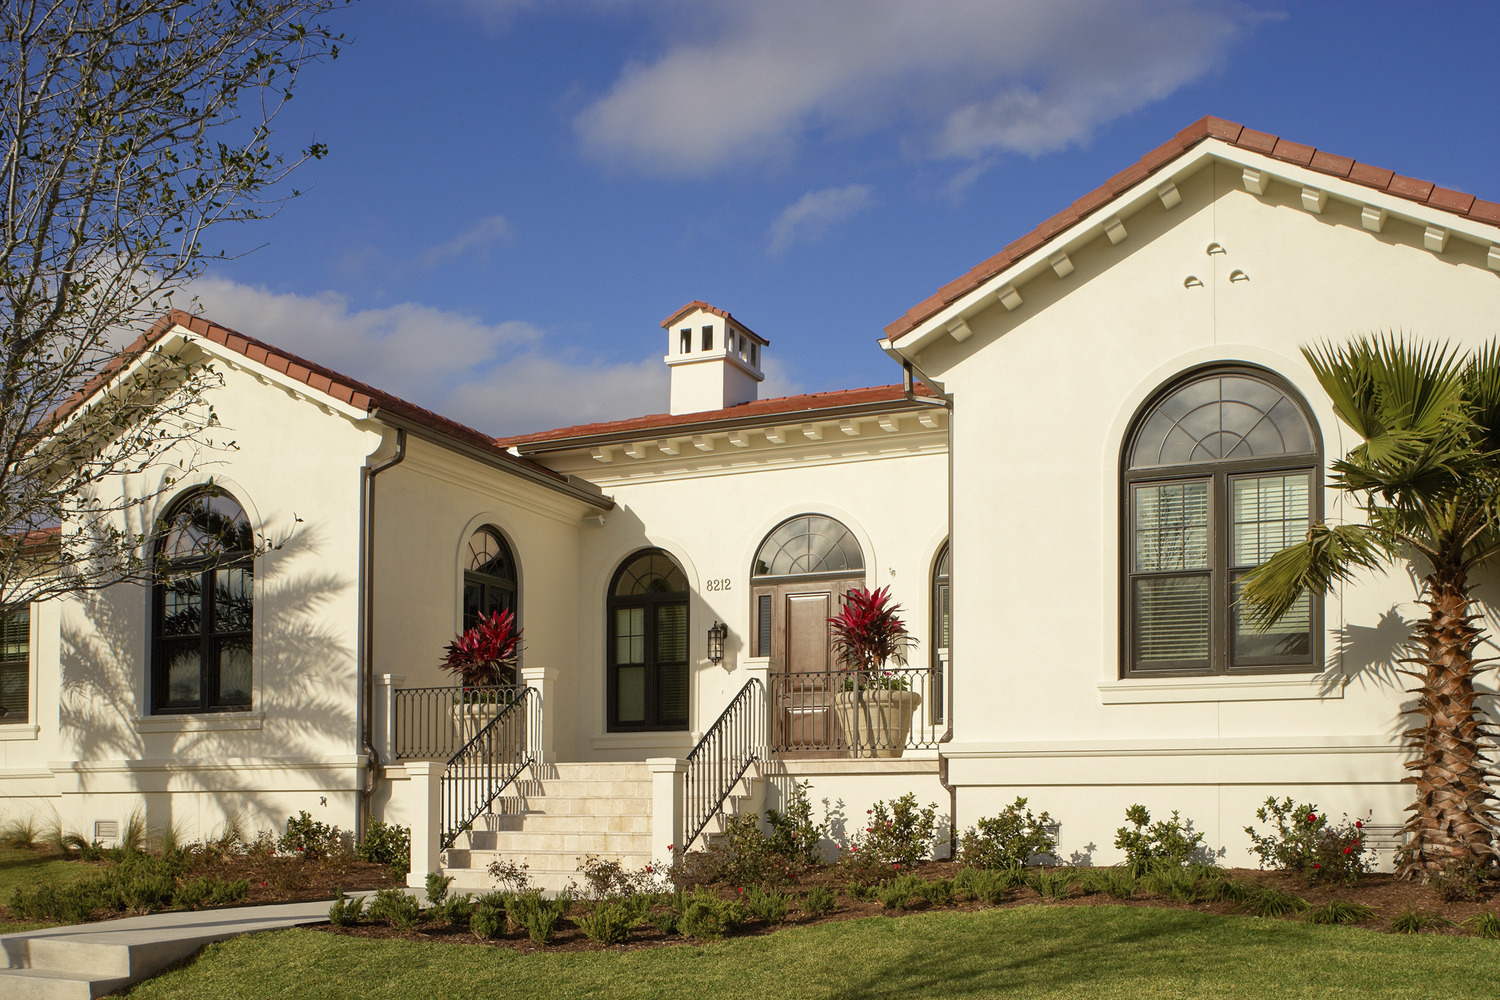 CBG builds MacDill Family Housing, a 527 Homes for Military Families in the Air Force at Harbor Bay at MacDill in Tampa, FL - Image #4